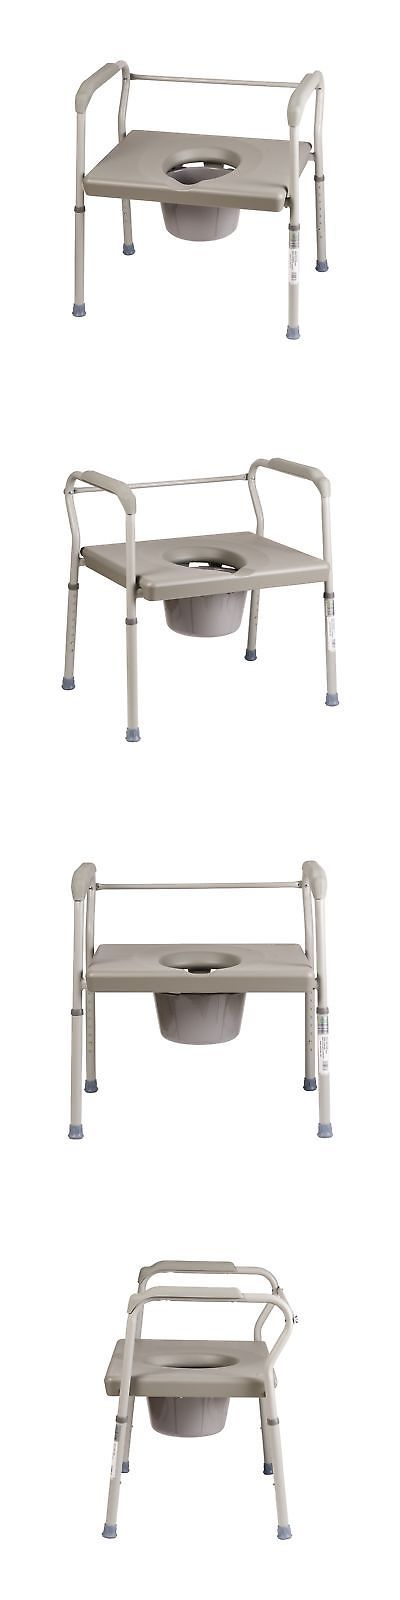 Toilet Frames and Commodes: Duro-Med Commode Chair Heavy-Duty Steel Commode Toilet Chair Toilet Safety Fr... -> BUY IT NOW ONLY: $117.9 on eBay!